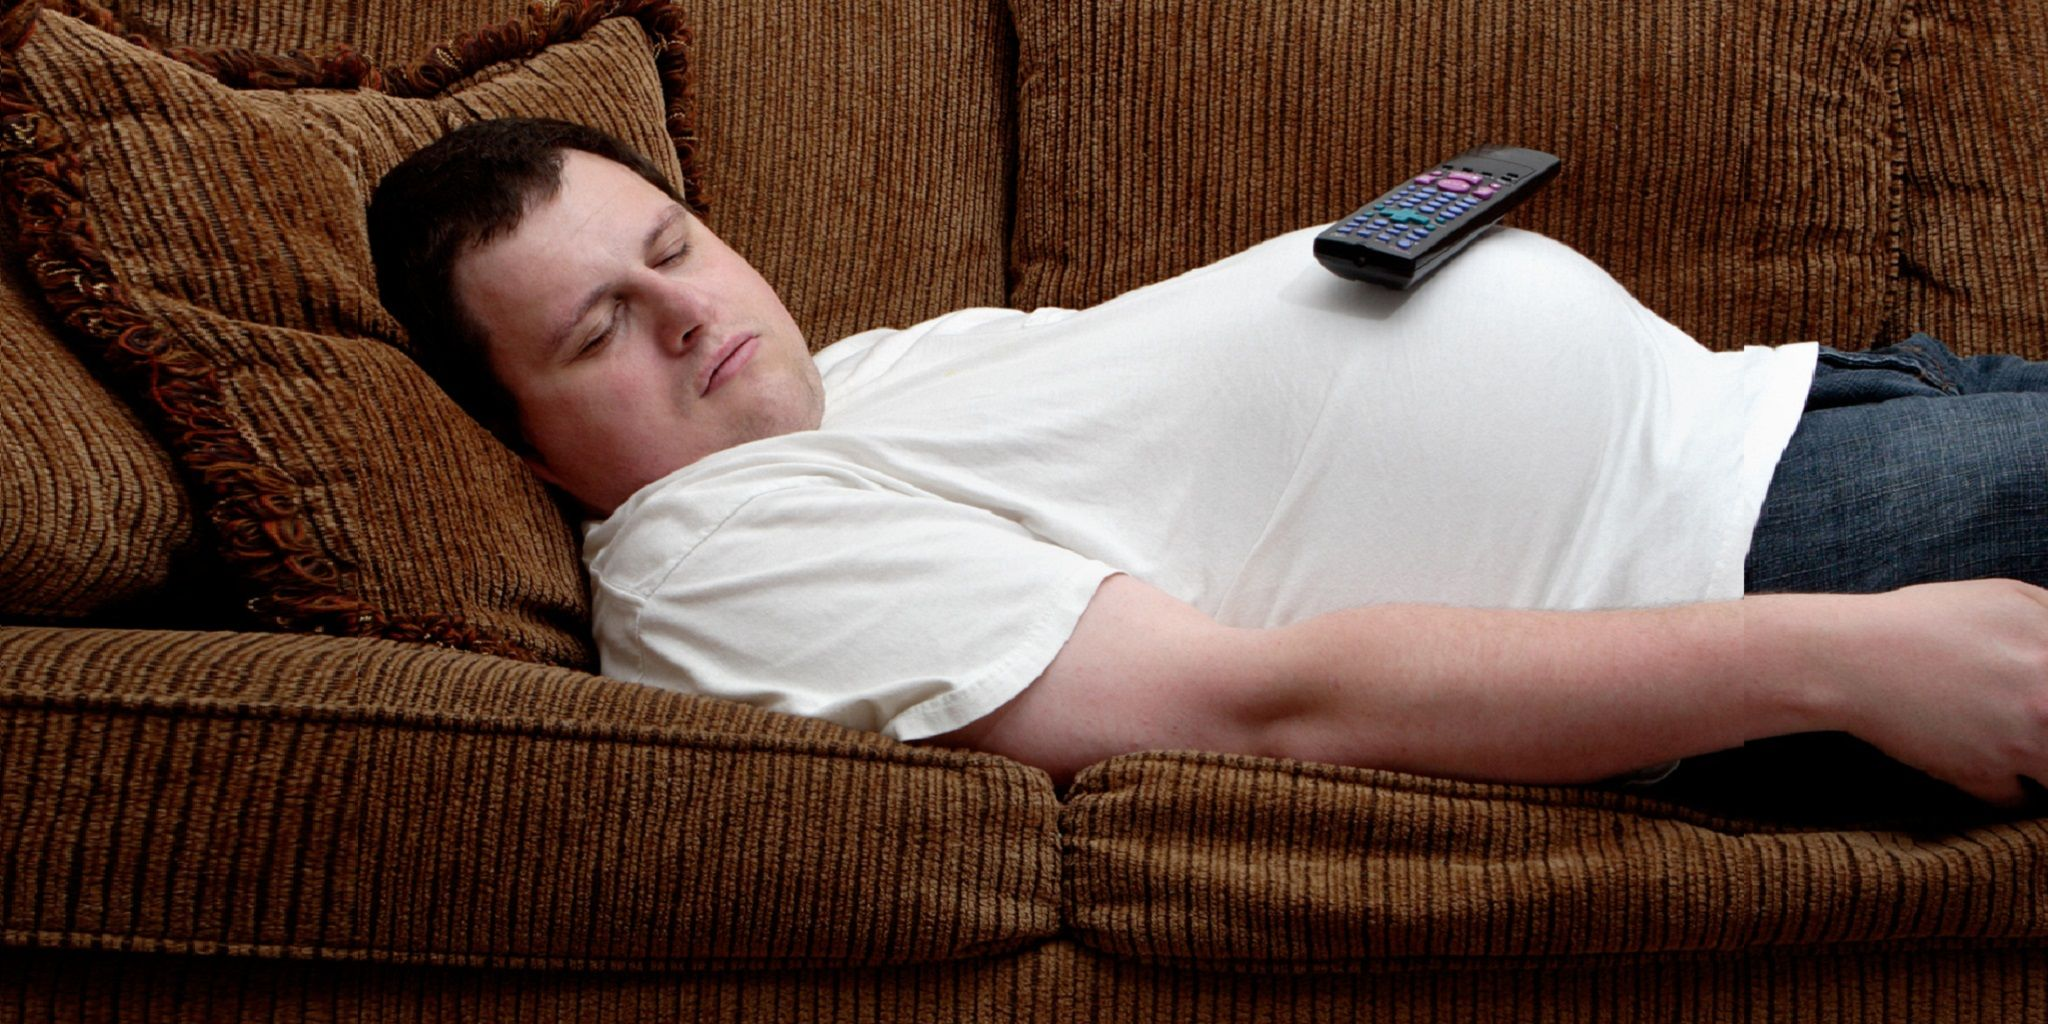 overweight bad for sleep